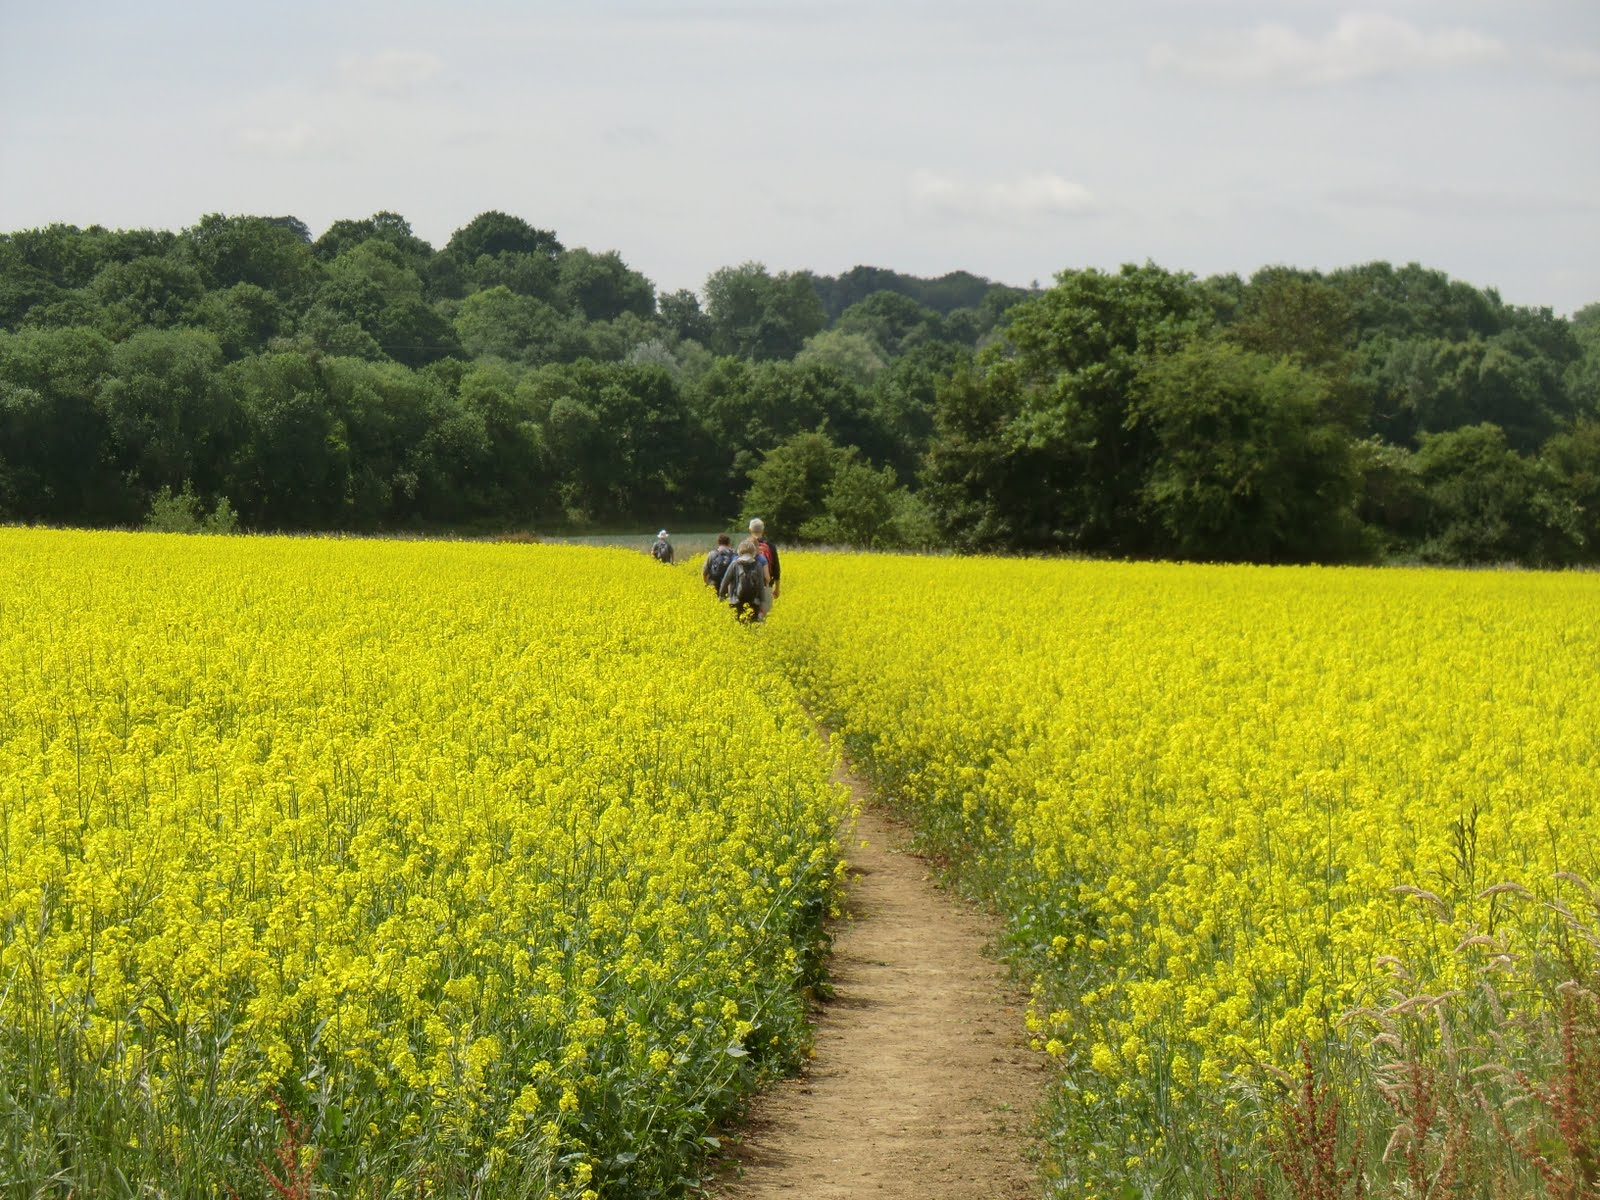 CIMG7314 Through a rape field in the Medway valley